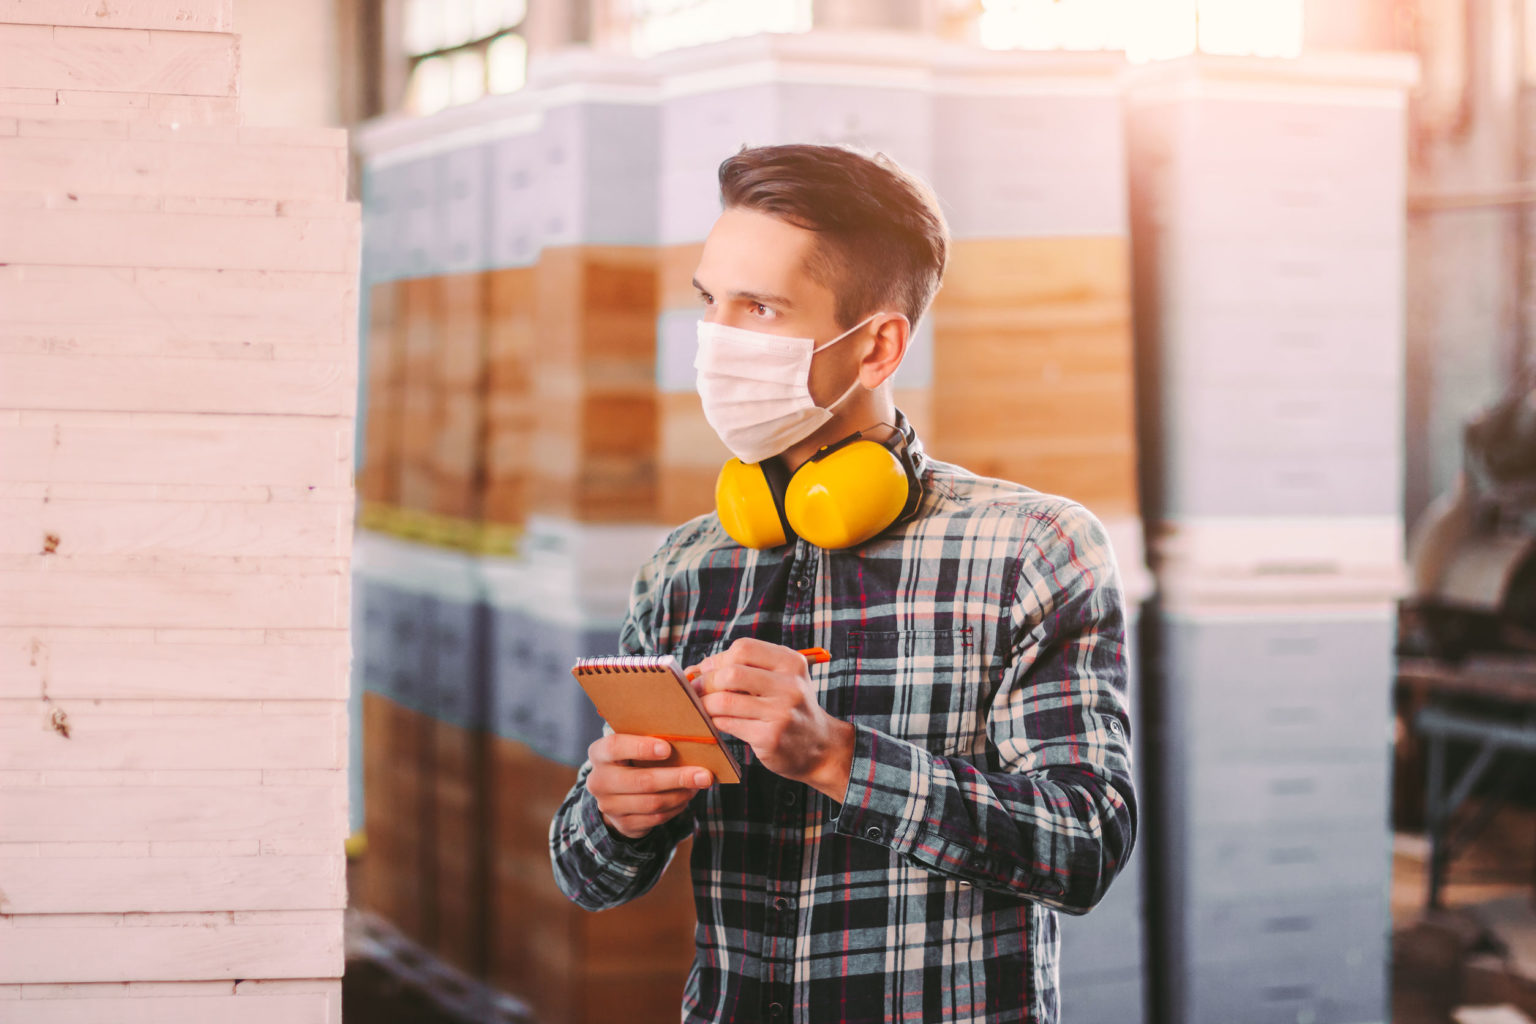 Man Supervisor Inspecting Warehouse During Covid 19 Quarantine